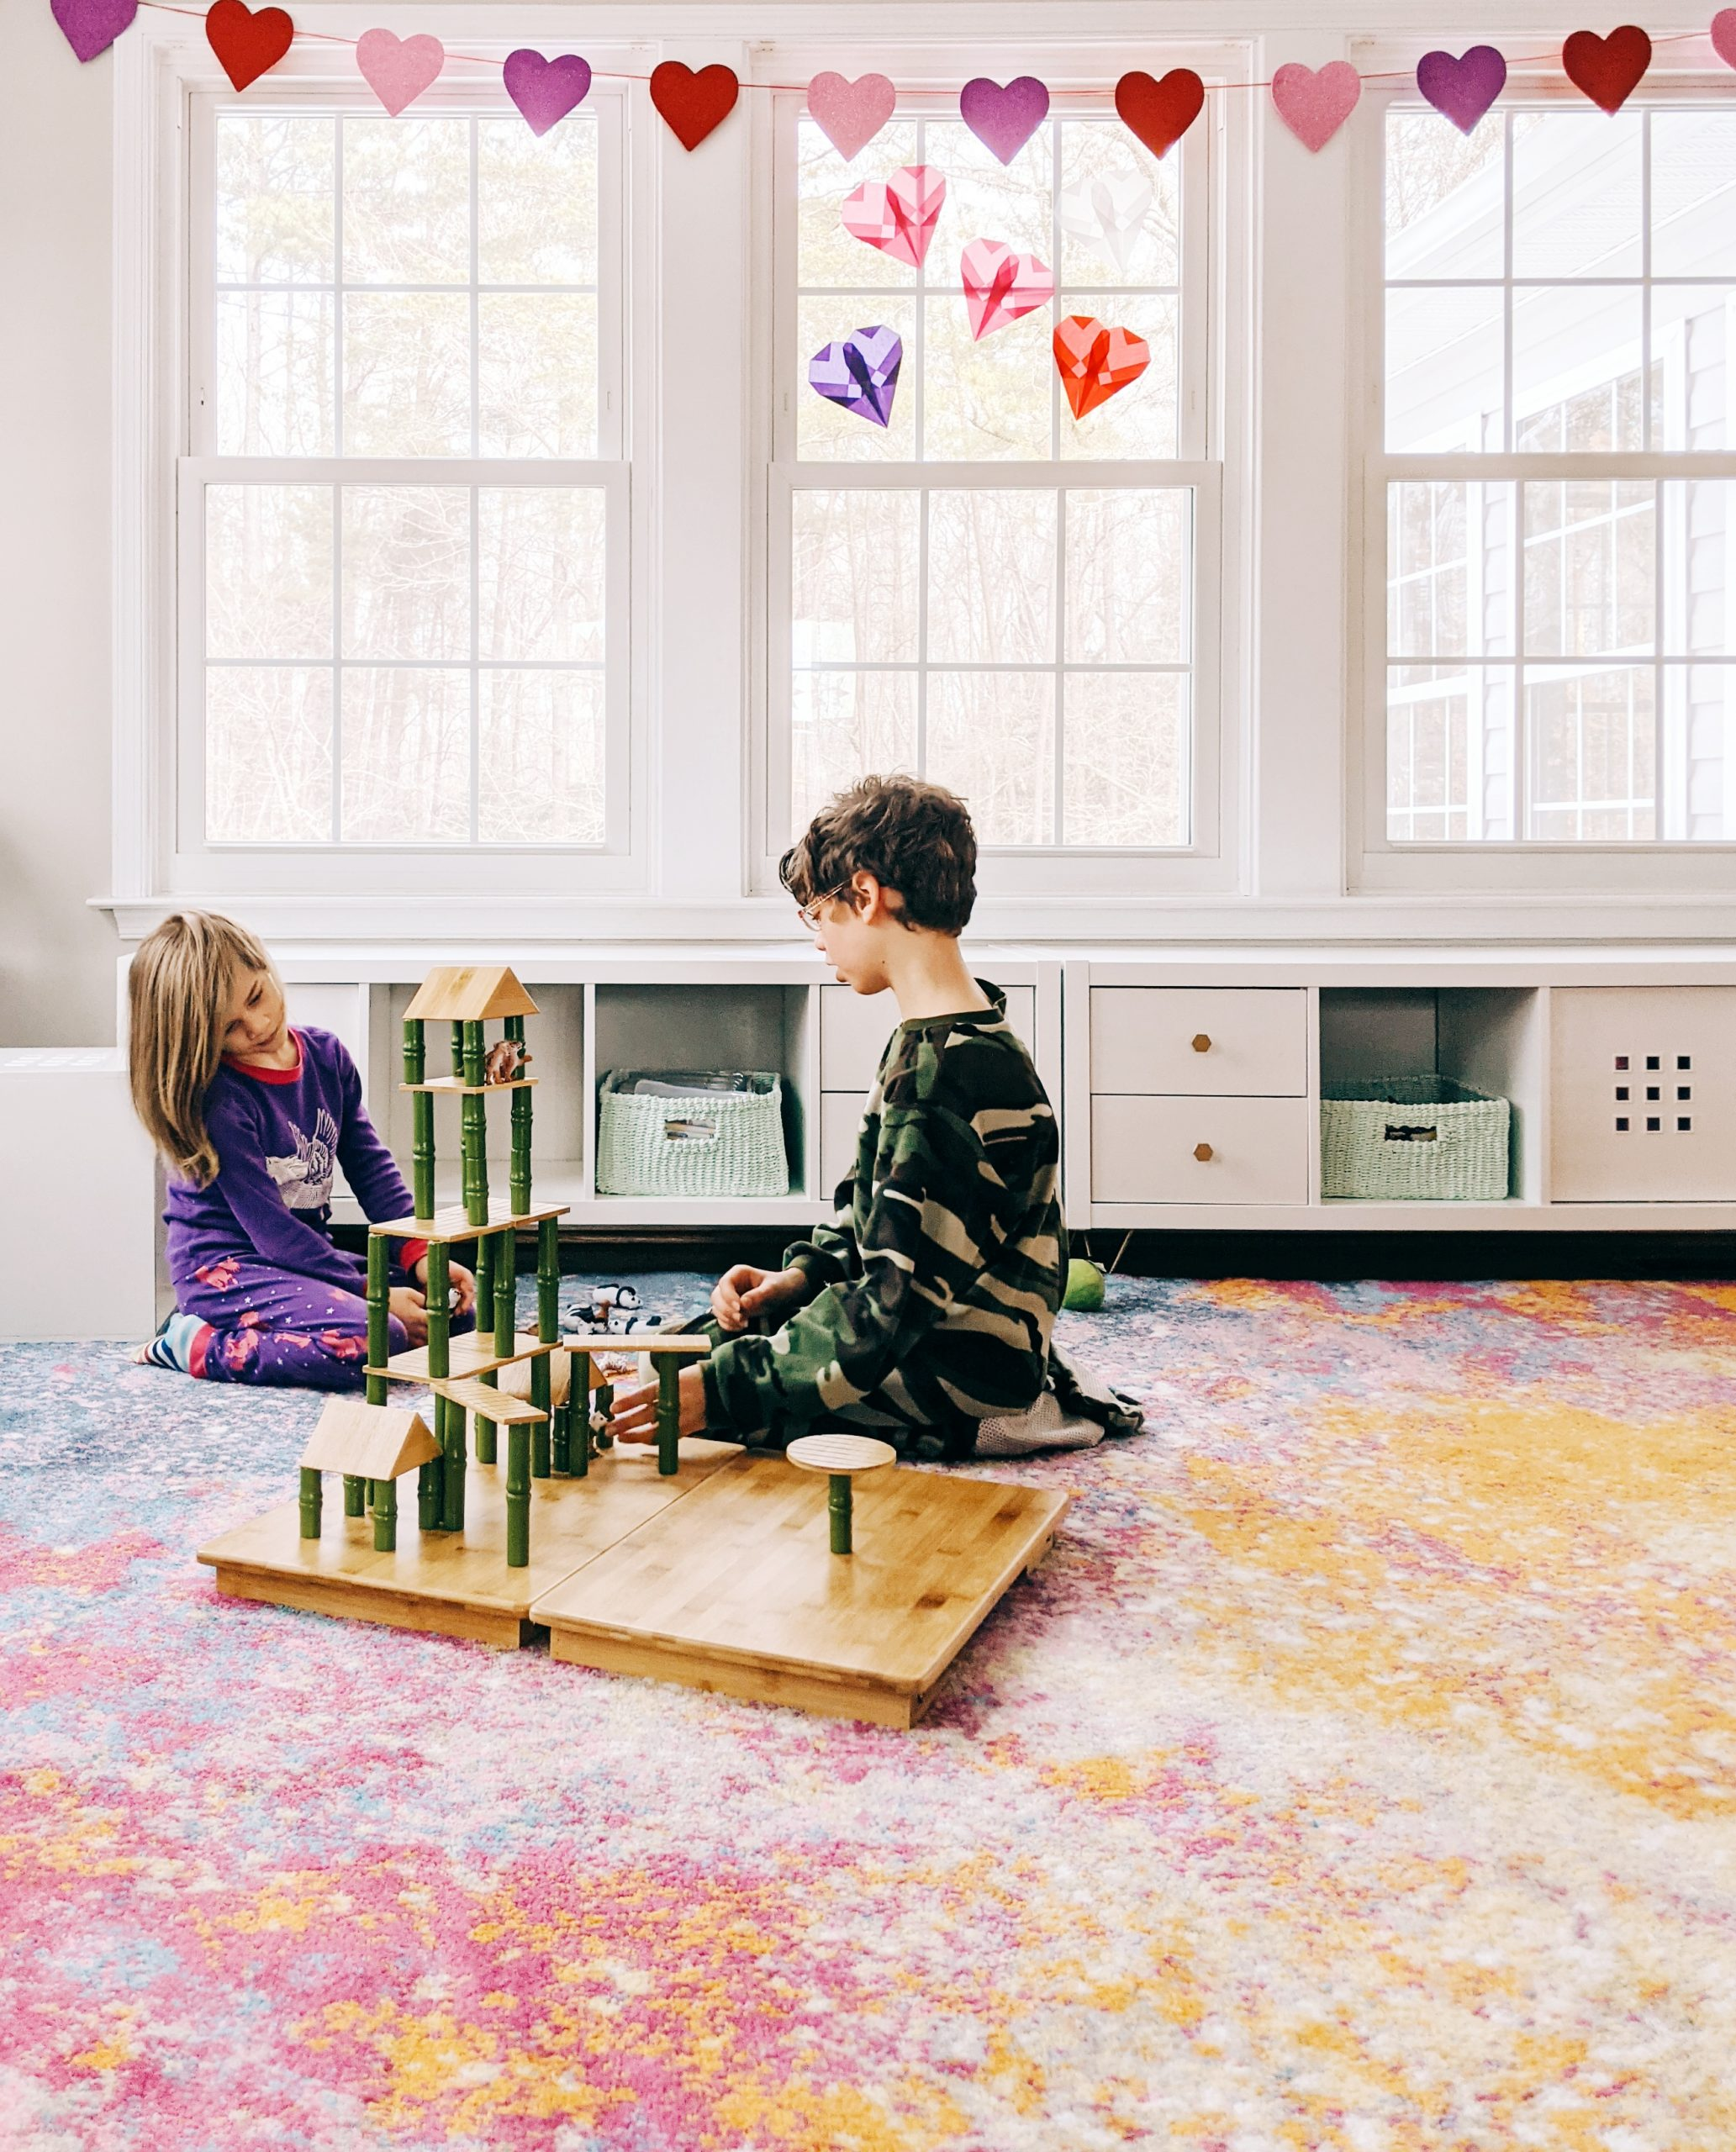 Two children play with building toys in a bright playroom. There is a heart garland over the window, and paper origami hearts in the windowpanes as sun-catchers.